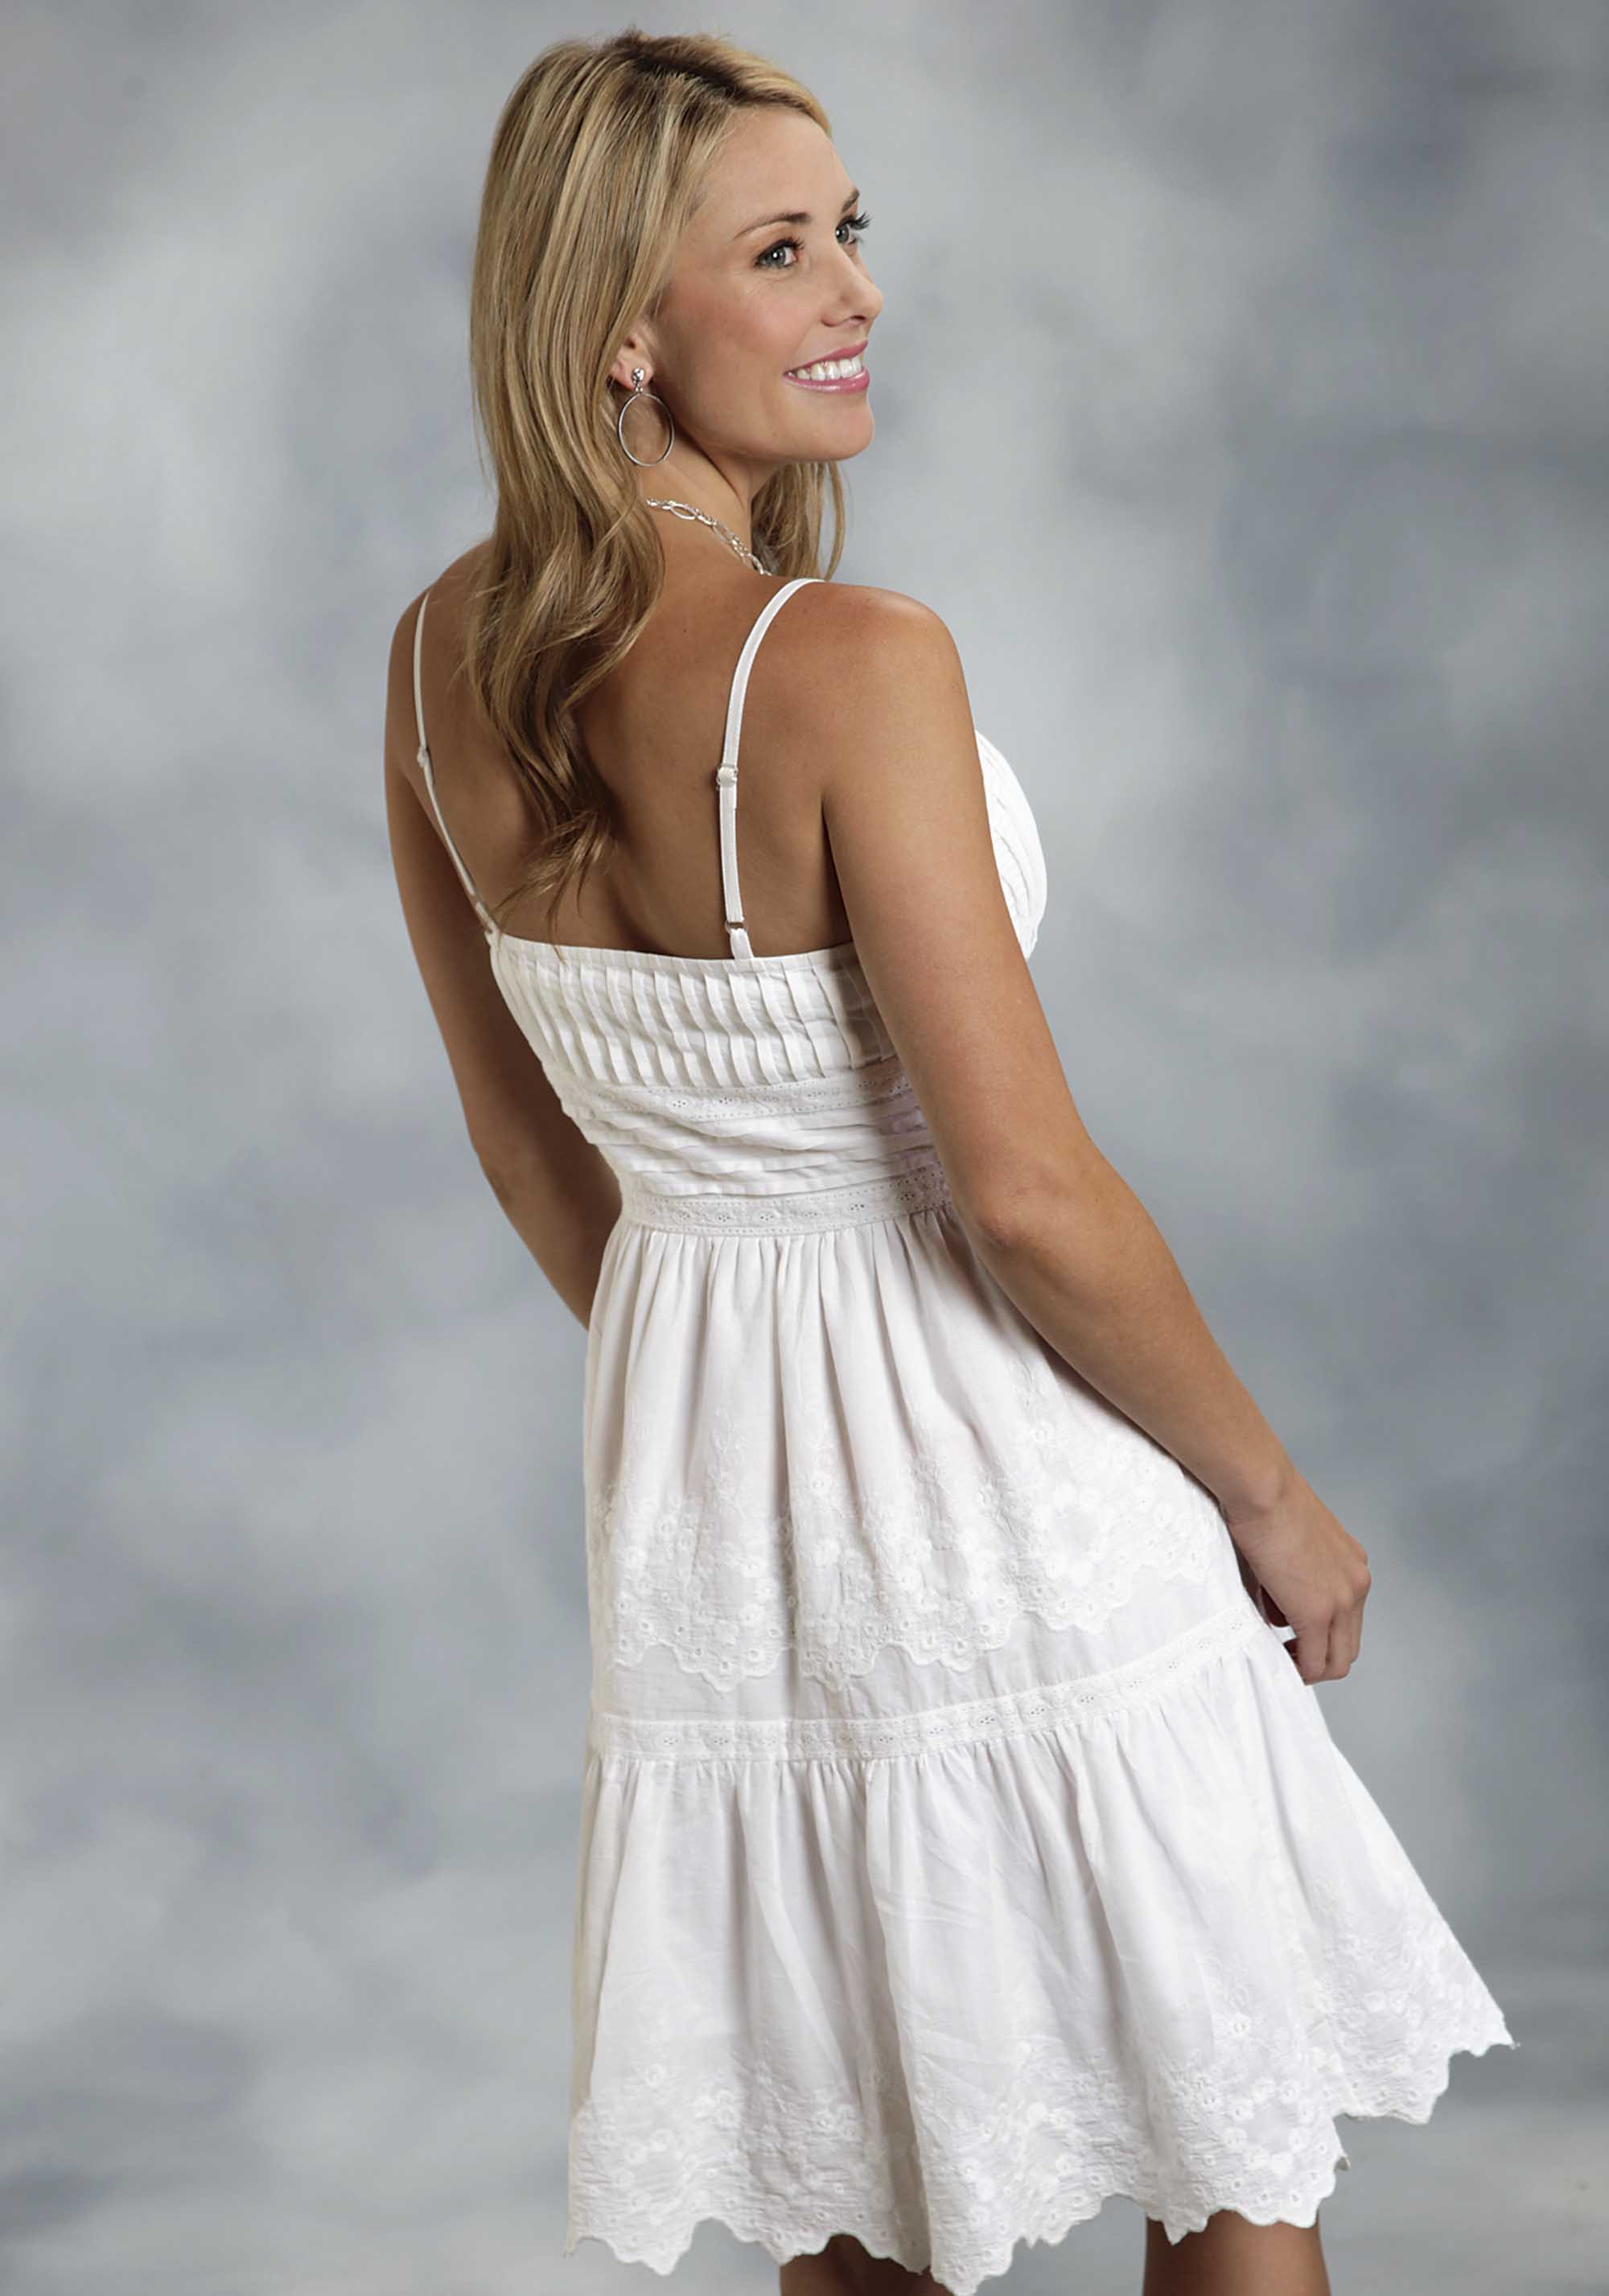 Roper 174 Women S White Cotton Eyelet Embroidered Western